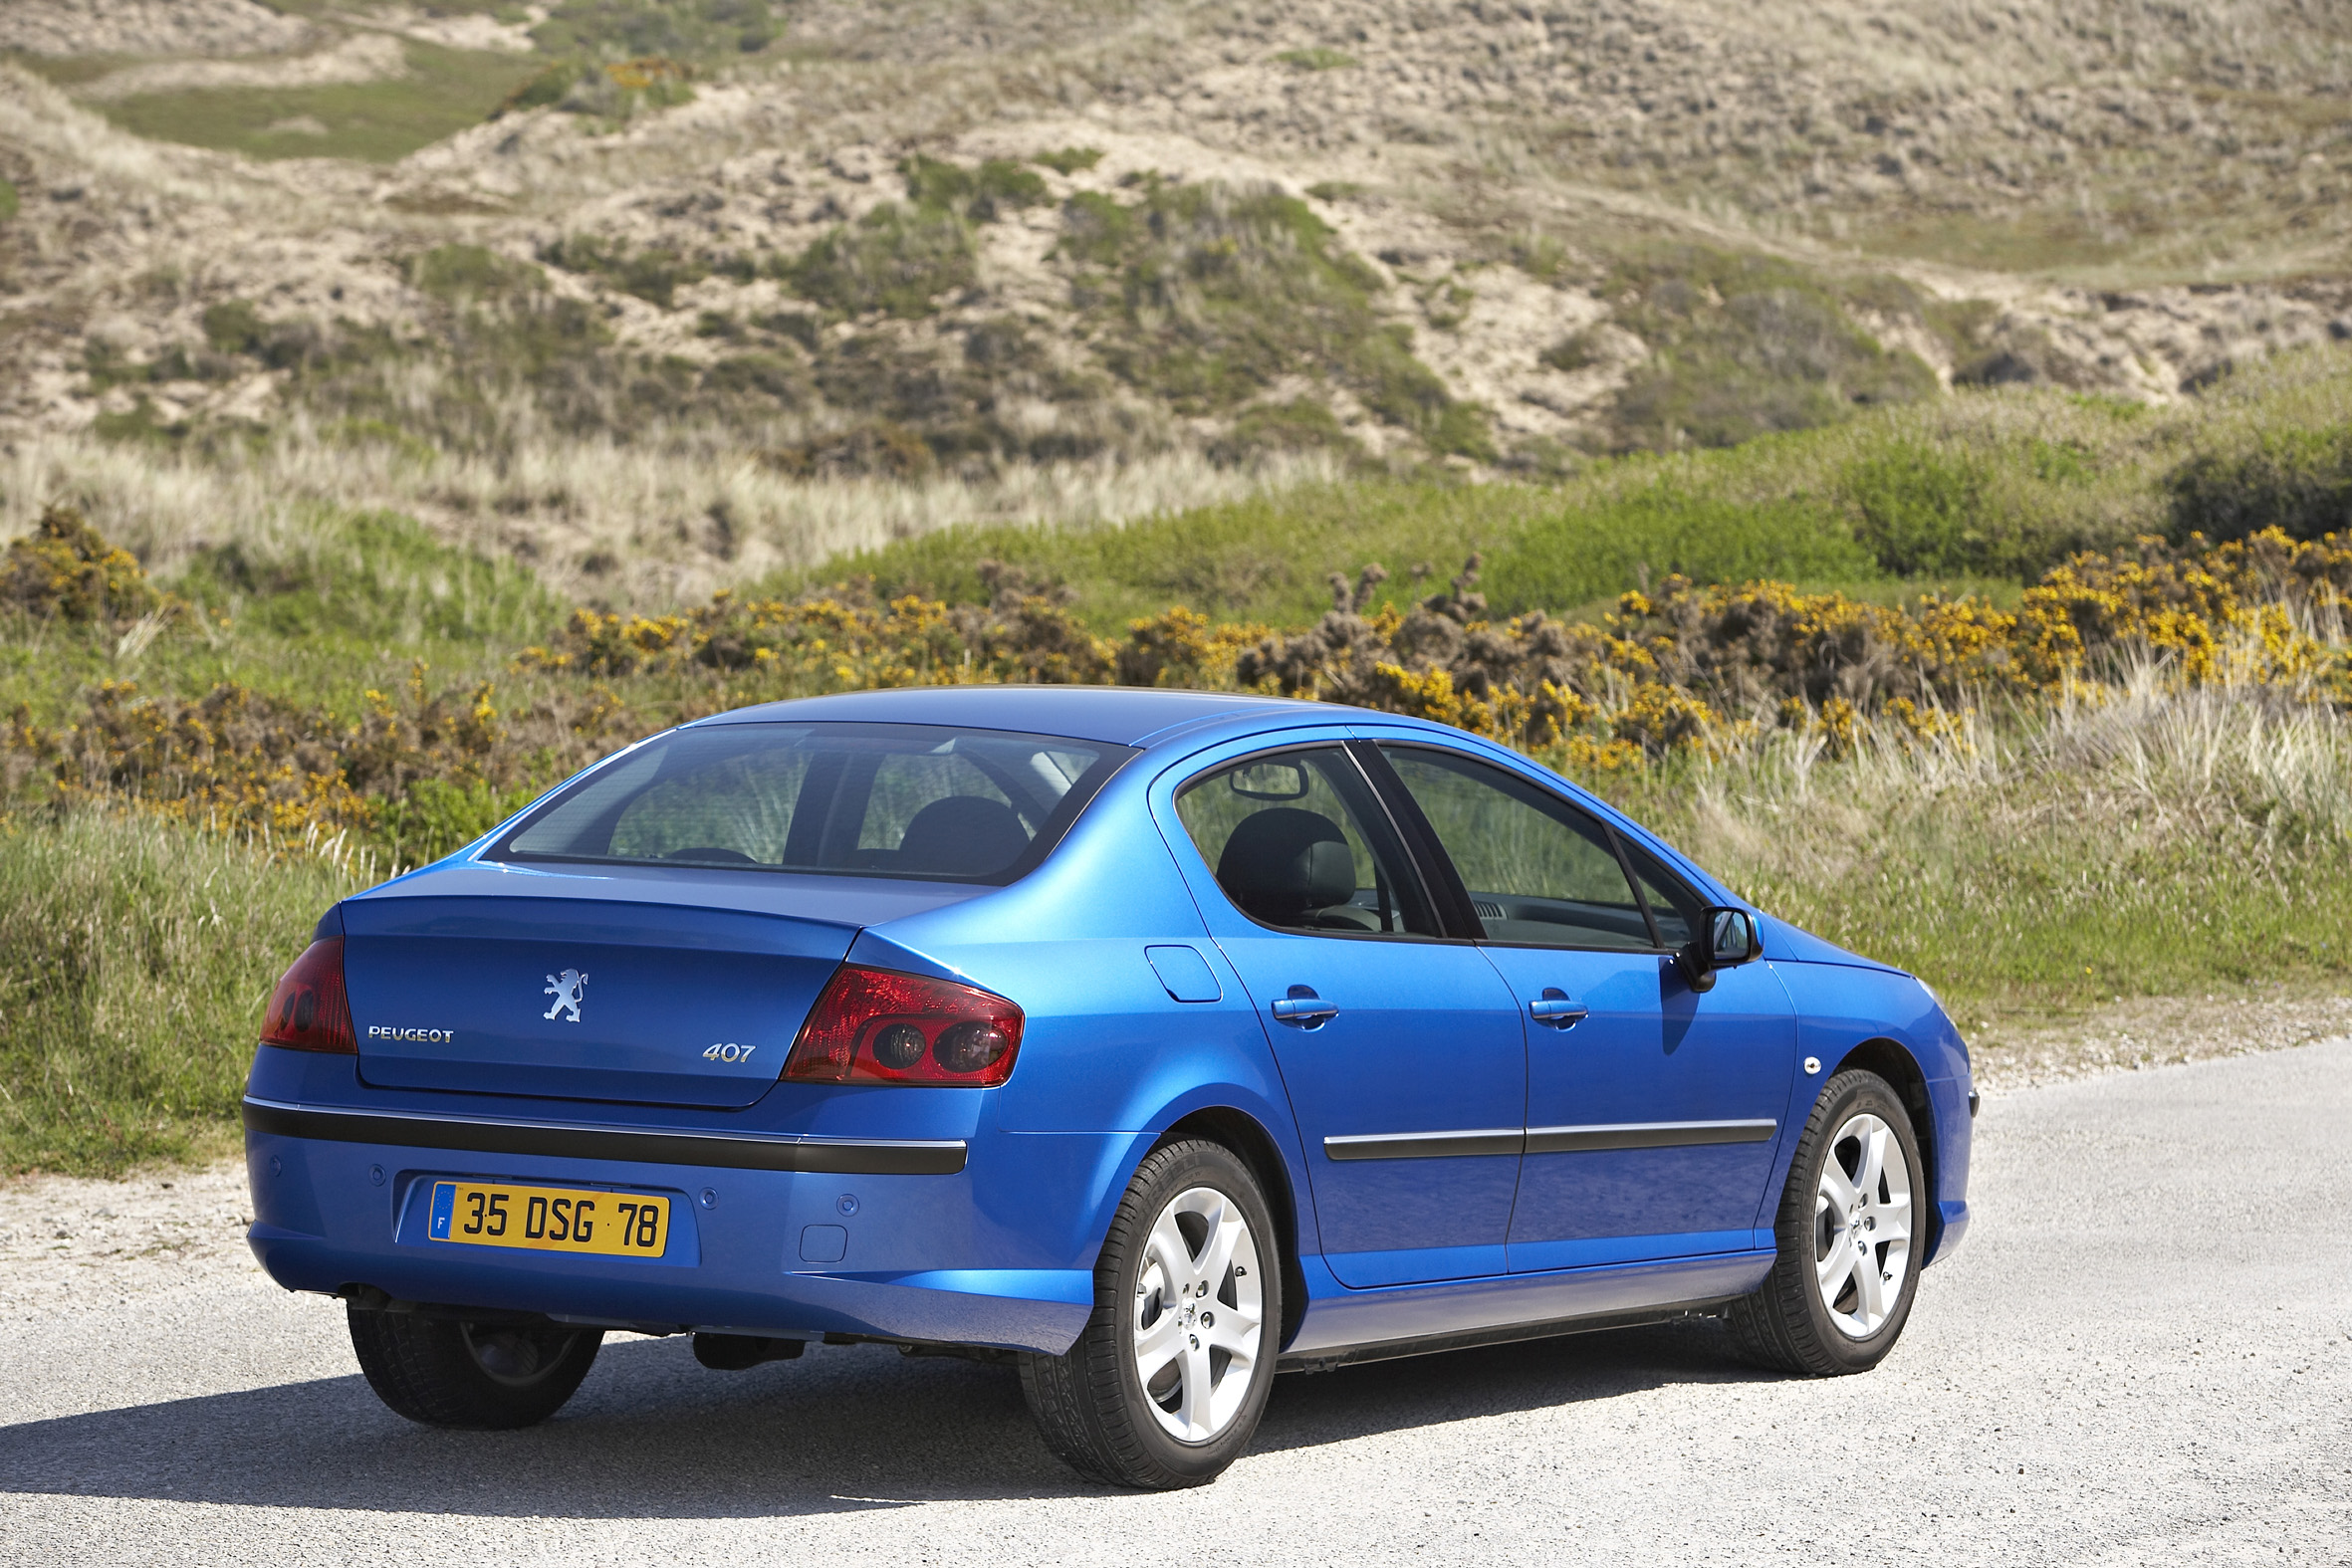 2006 peugeot 407 review - top speed